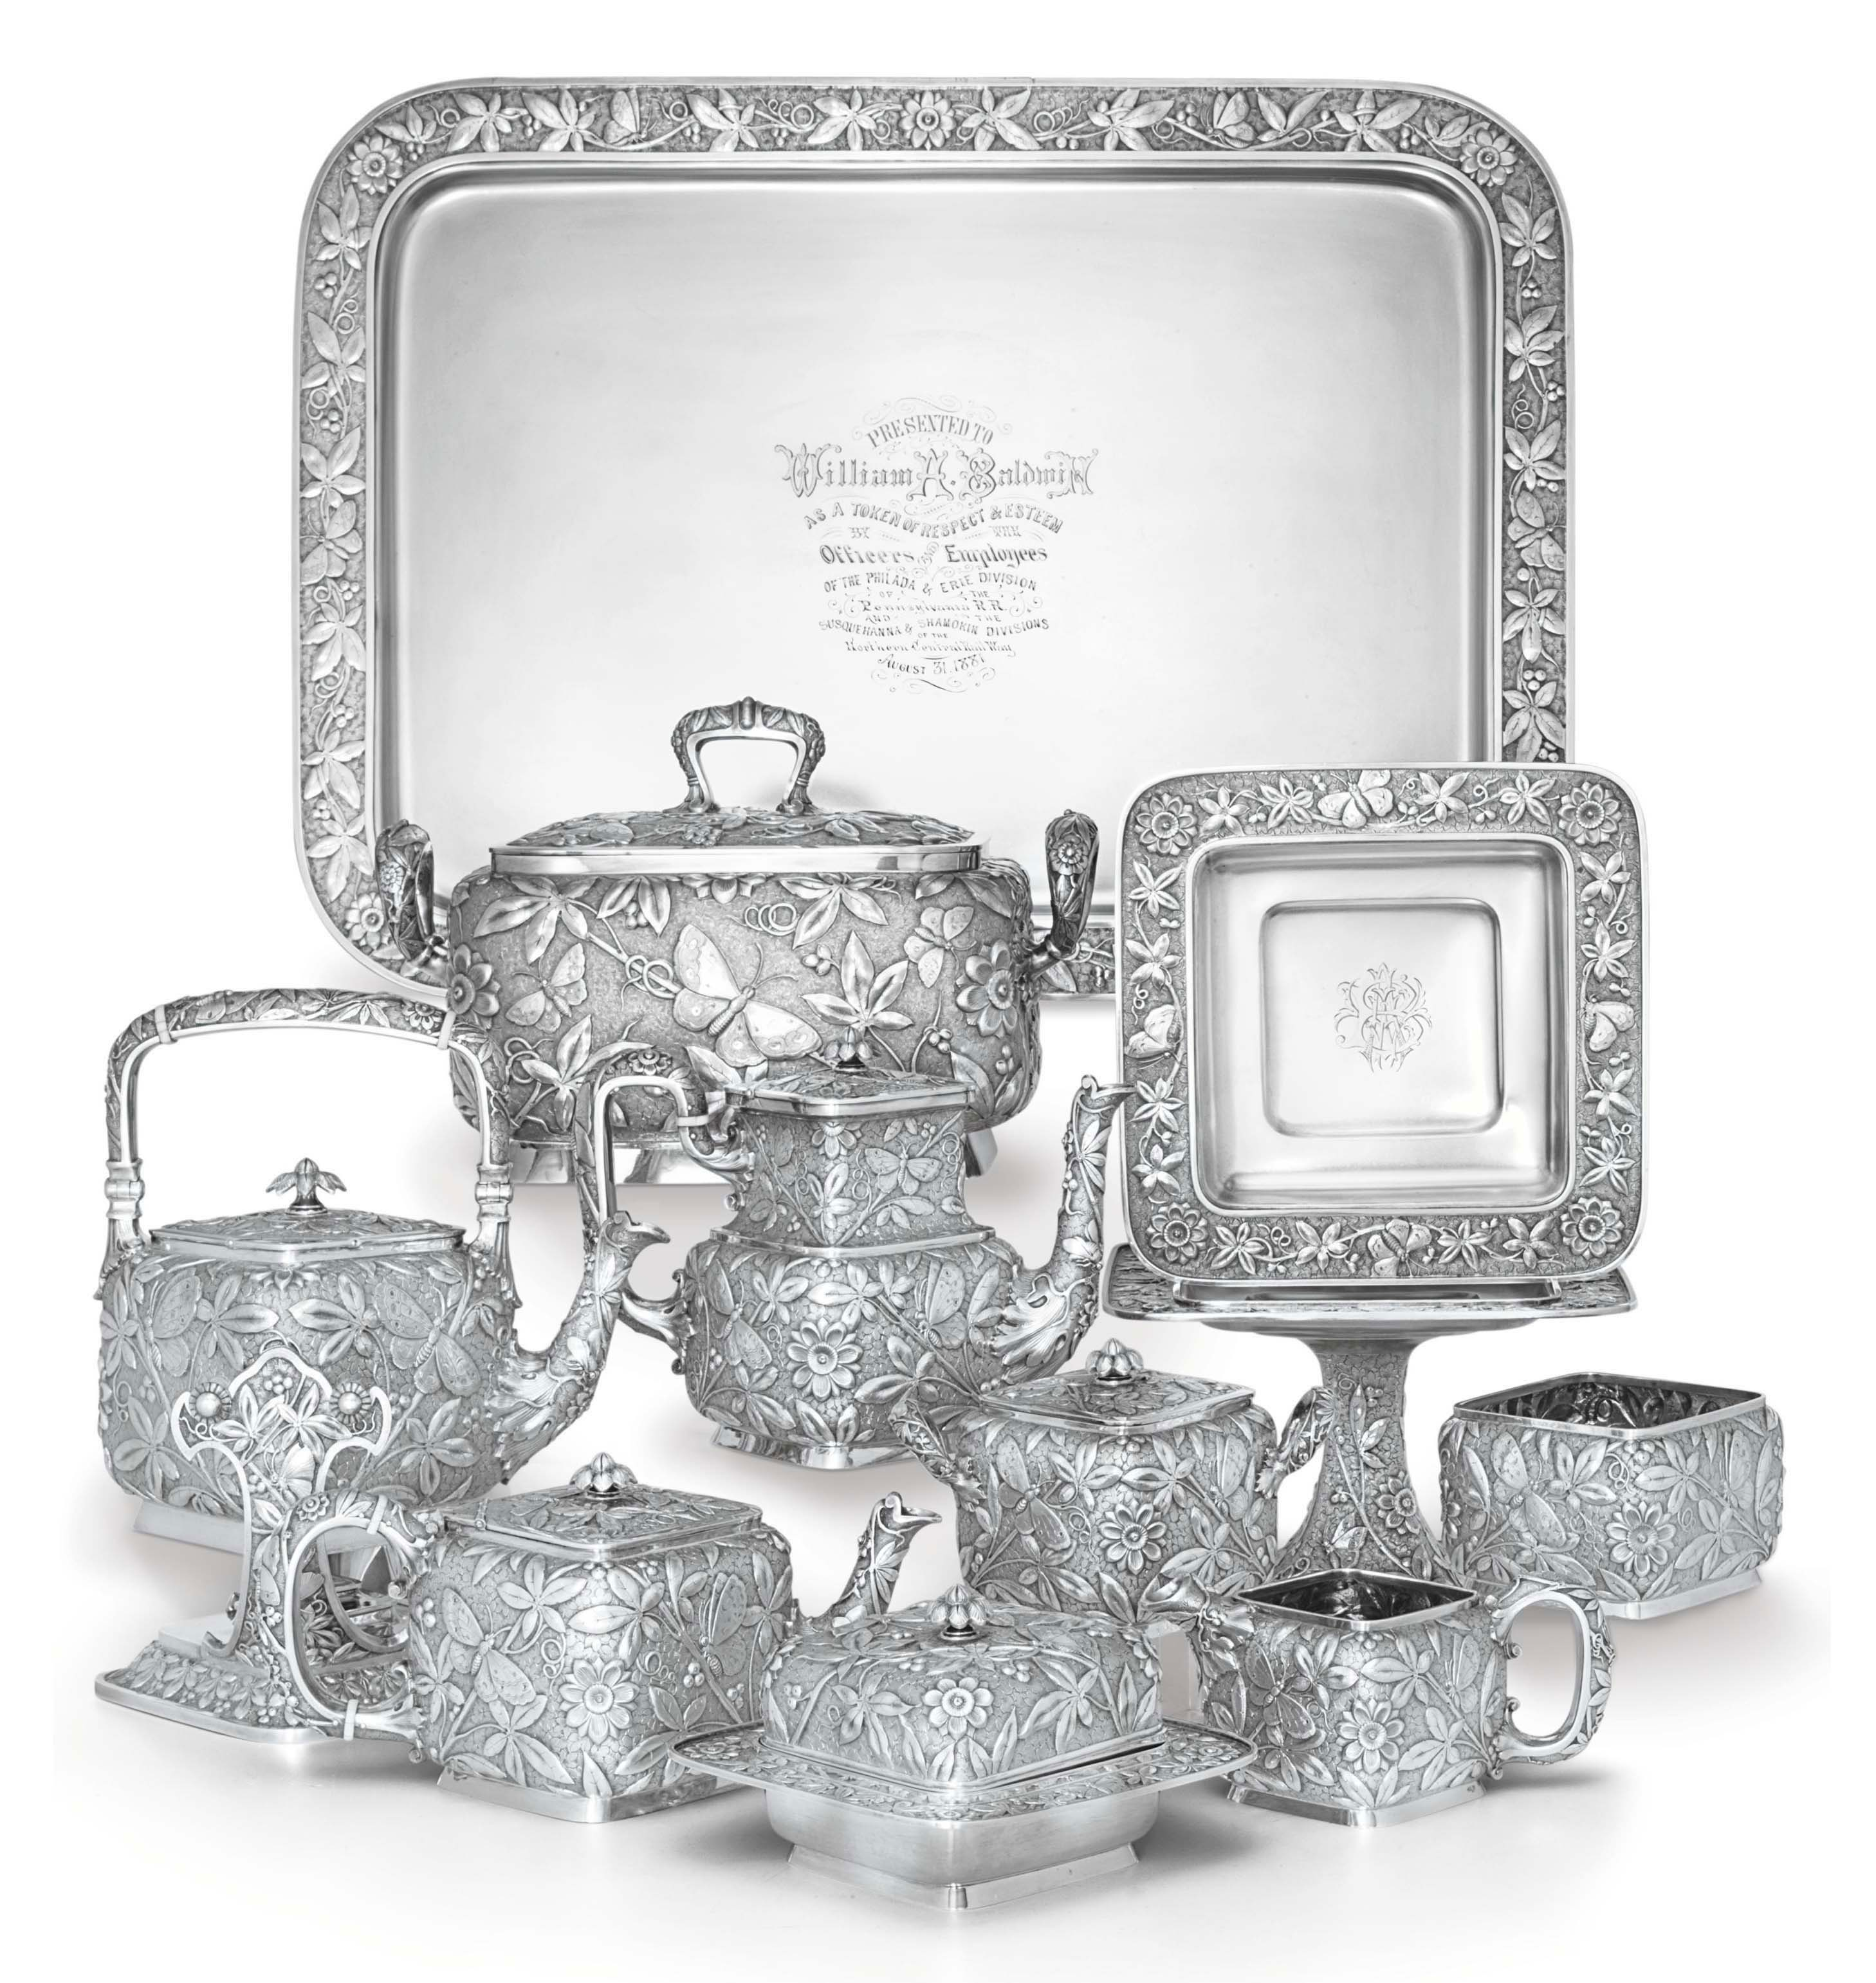 AN UNUSUAL AMERICAN SILVER TEA AND COFFEE SERVICE WITH TUREEN AND CAKE STANDS**